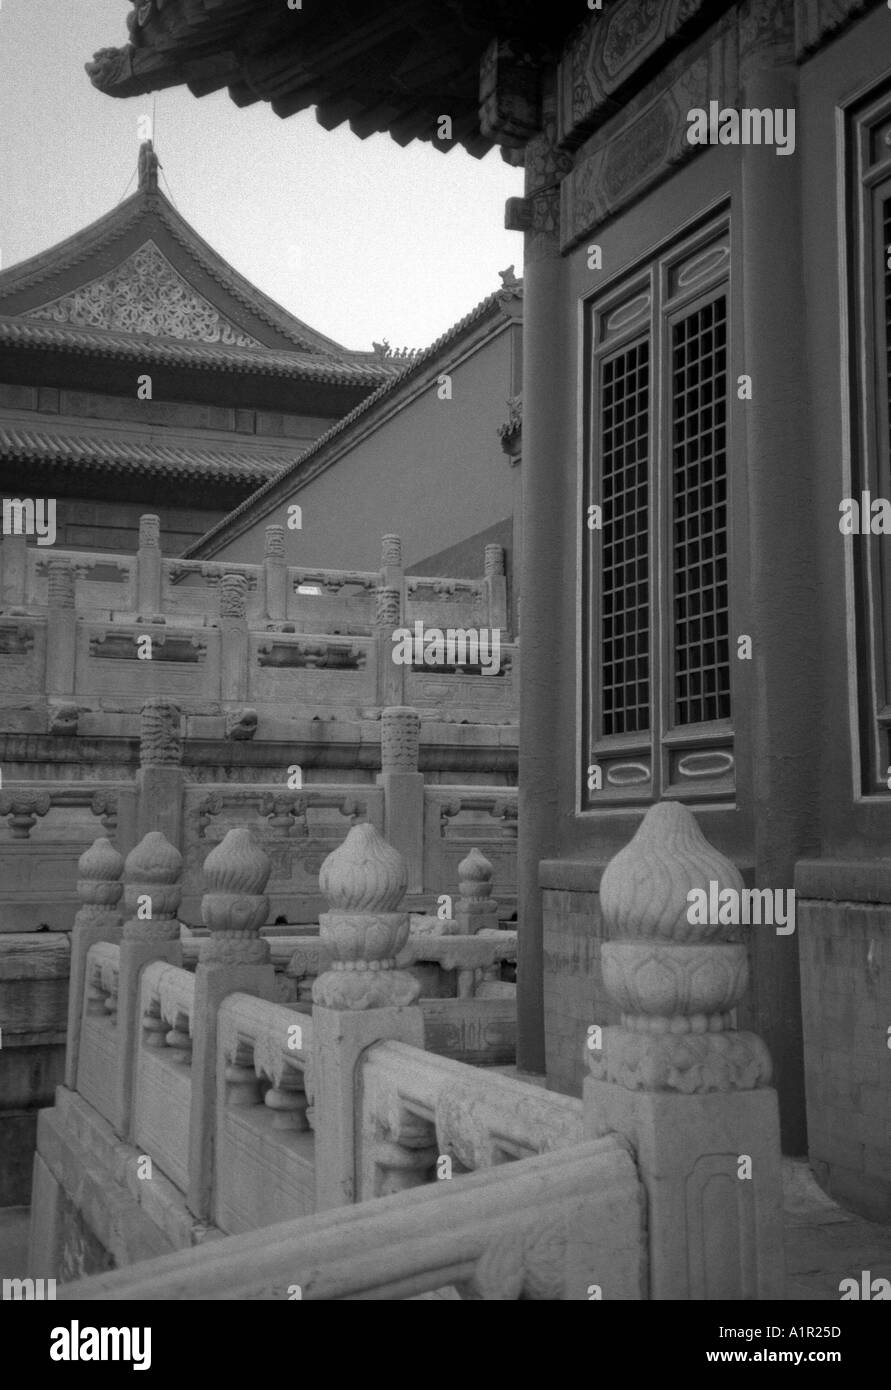 Forbidden City Imperial Palace UNESCO World Heritage Site Beijing Peking China Chinese Asian Asiatic Asia - Stock Image